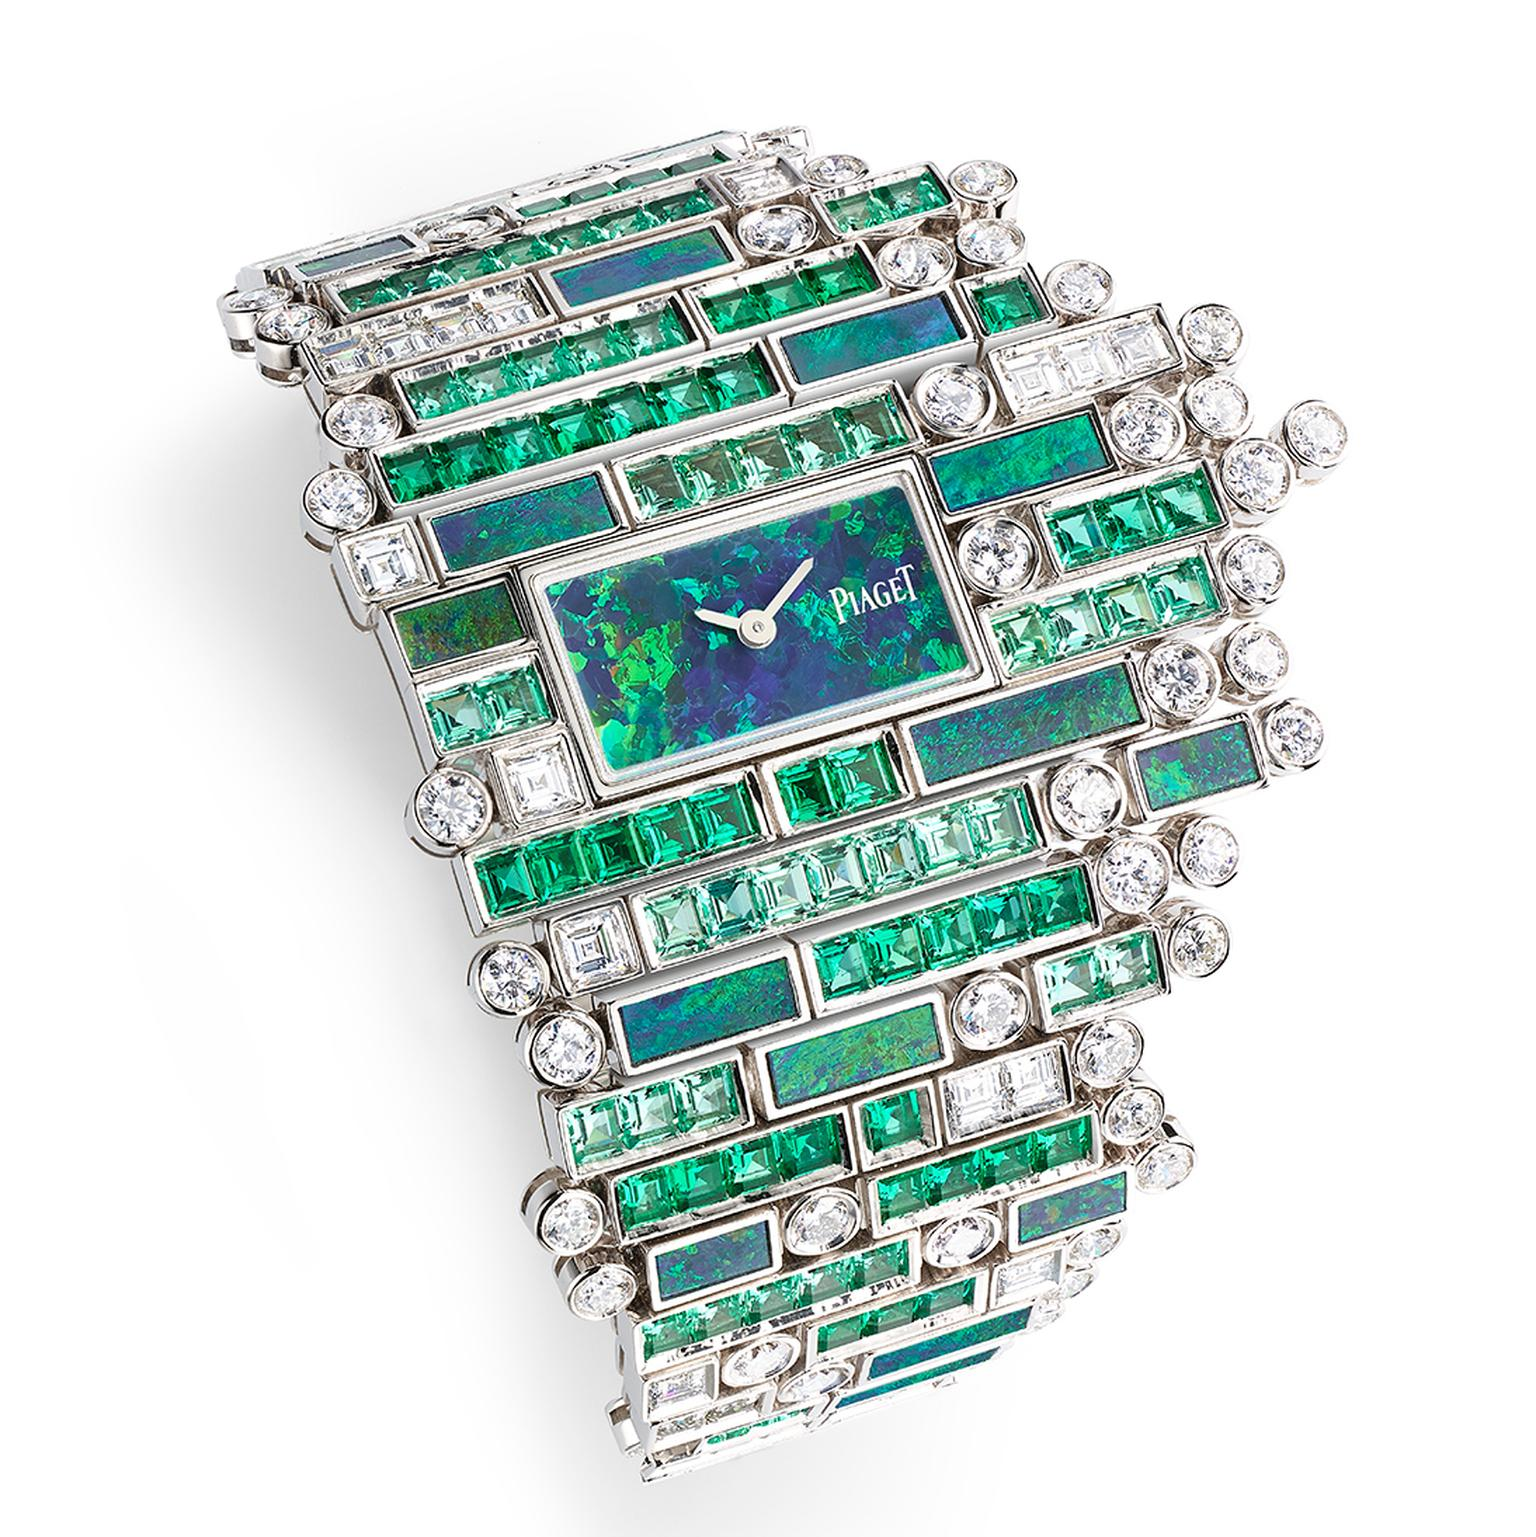 Piaget Verde Bisazza jewellery watch